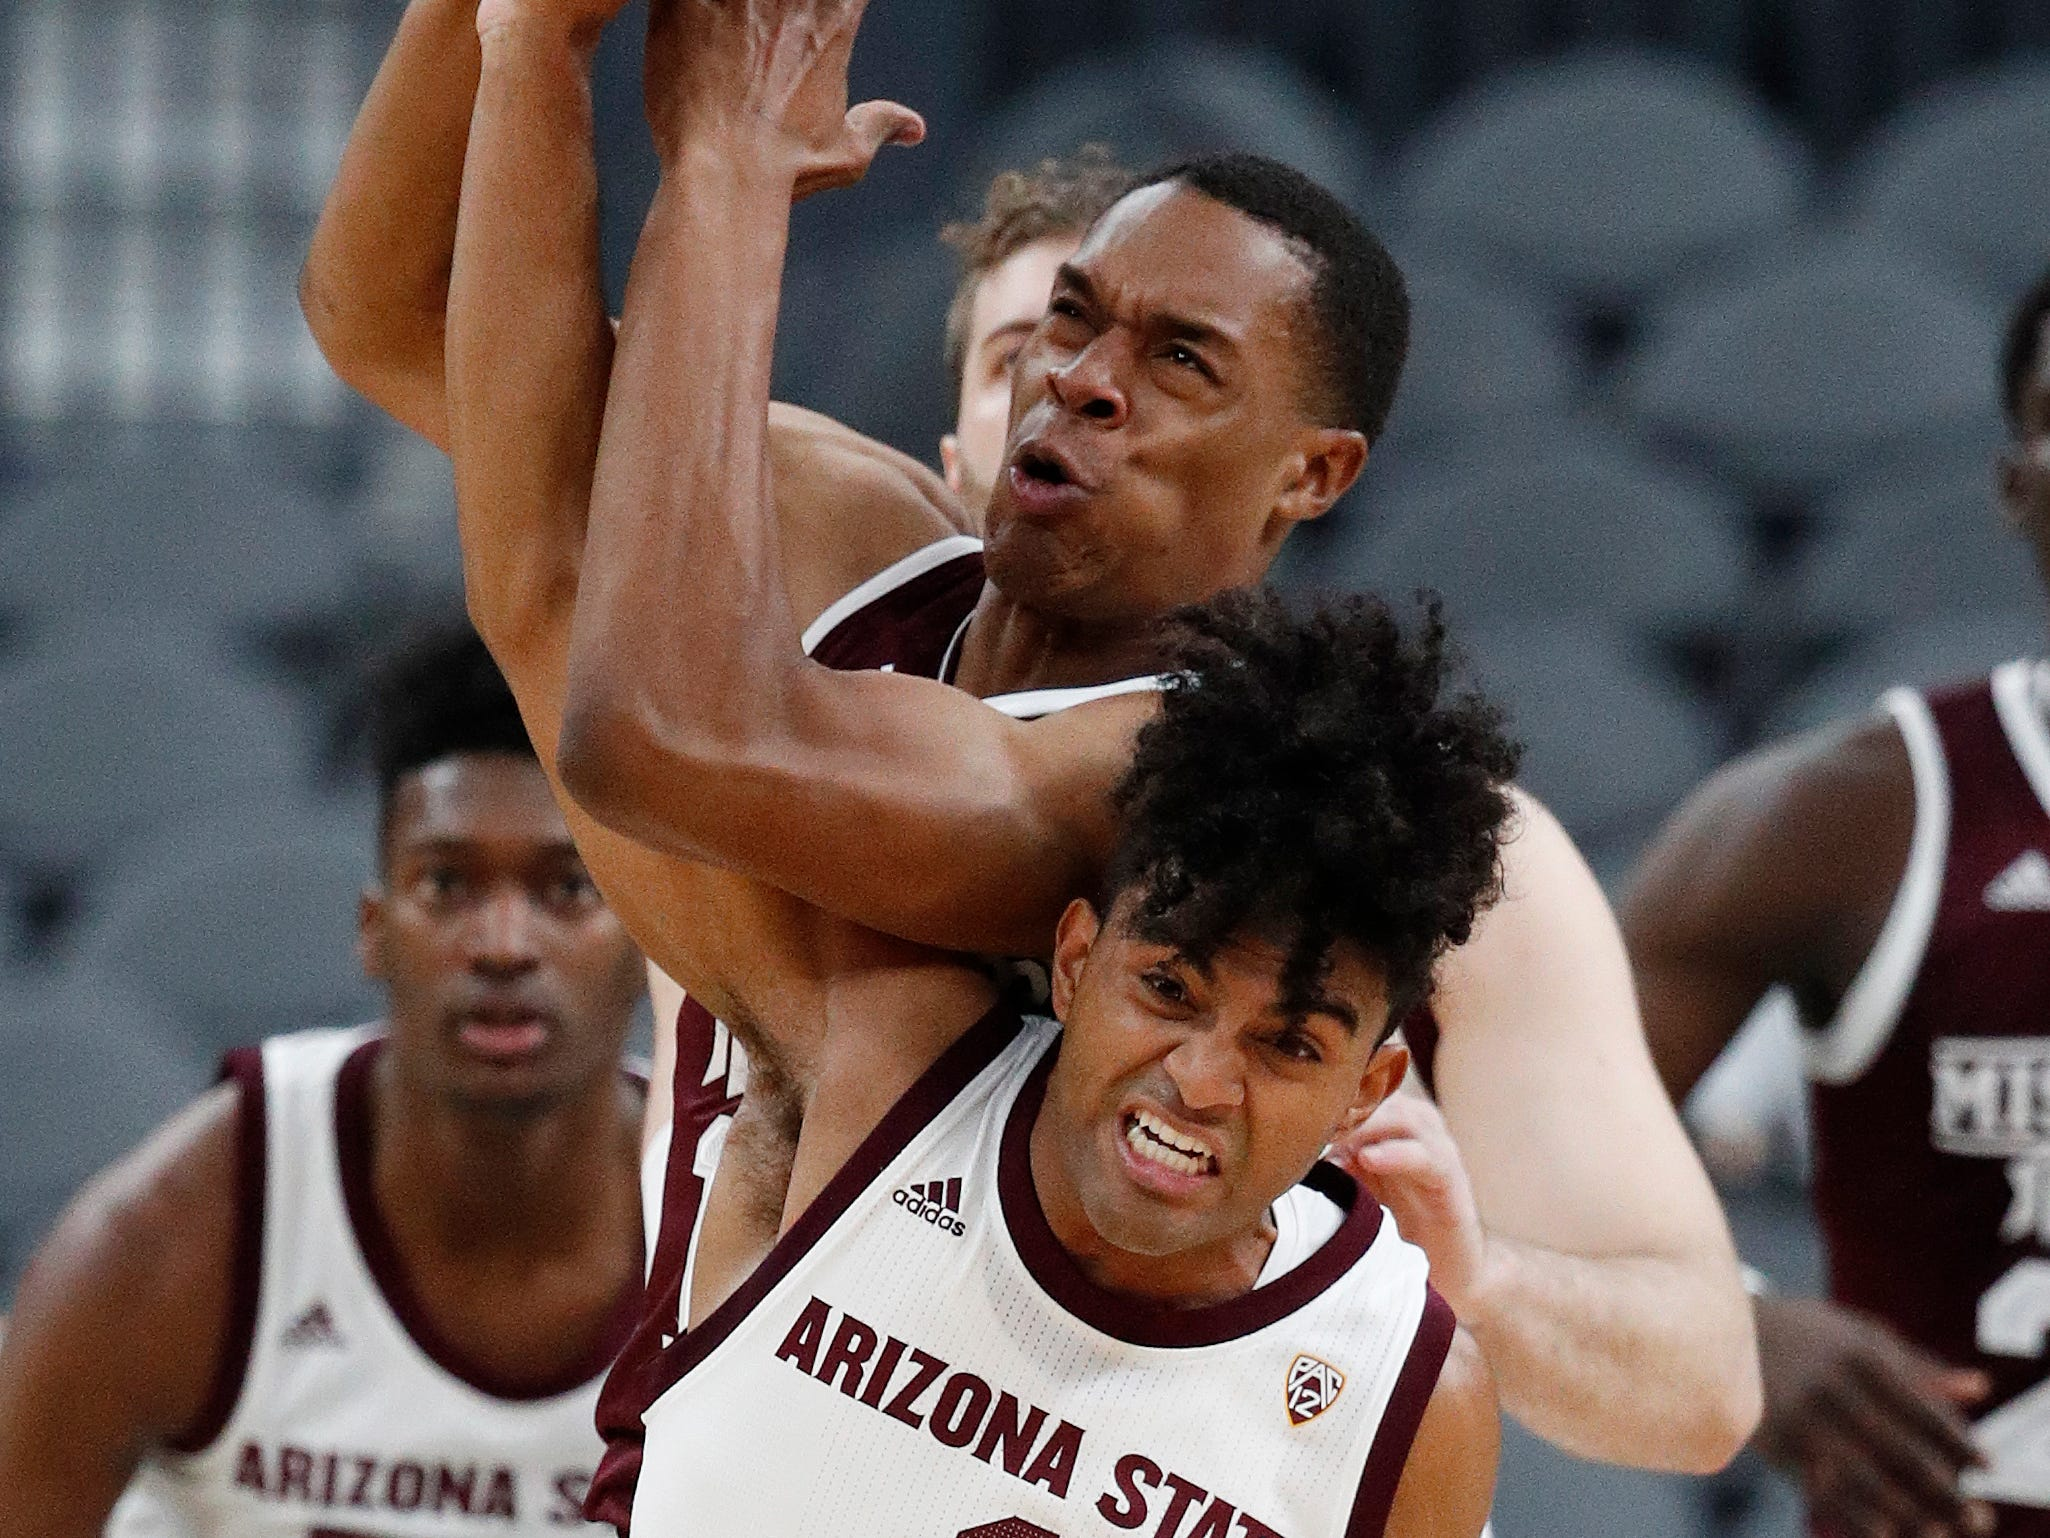 Arizona State's Remy Martin (1) fouls Mississippi State's Robert Woodard II during the first half of a NCAA college basketball game Monday, Nov. 19, 2018, in Las Vegas. (AP Photo/John Locher)